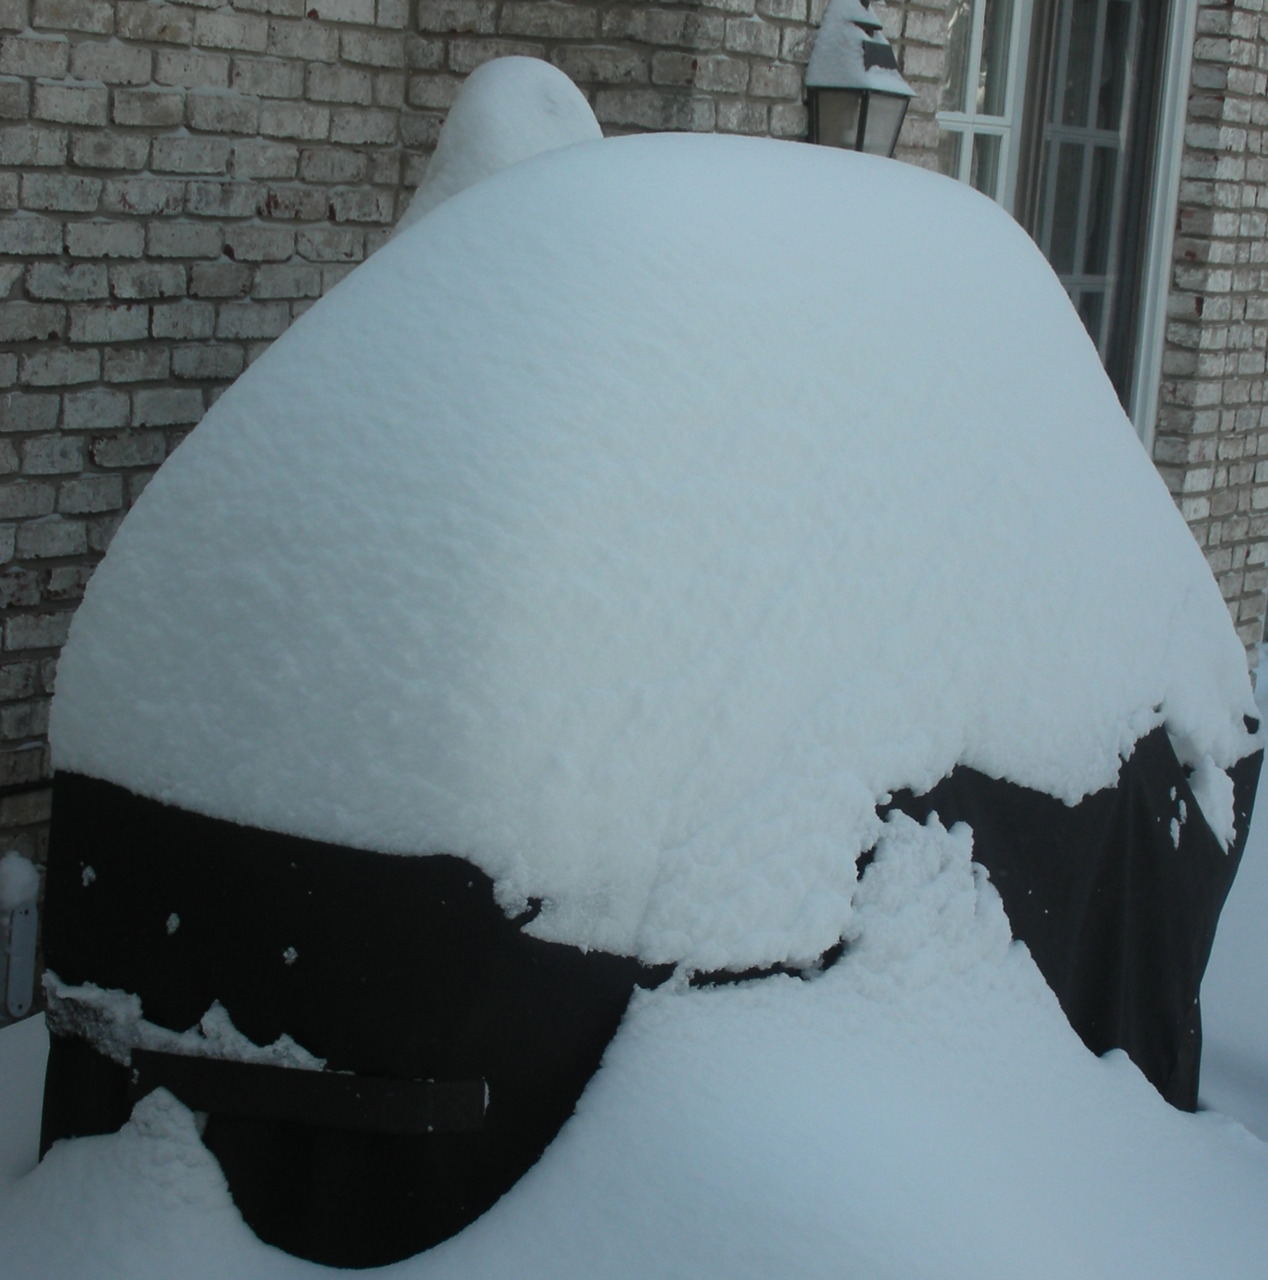 Last summer when we put up the big lights for the backyard I thought we'd be able to use our grill during the winter, when it gets dark at dinner. I forgot that there might be 12 inches of snow followed by another 9 inches of snow followed by another 12 inches of snow. My grill looks like some kind of prehistoric animal preserved for eternity in a chunk of white. Besides, I can't even get to it. I can't open the door to the terrace.  Yes I love winter's warming foods. Yesterday we had beef stew and I've also made thick soups and put away osso buco and chicken fricassees and pot roast to unfreeze and have for dinner on busy days.  But sometimes I want something simple and grilled. Like a boneless chicken breast. Or grilled Italian bread sandwich with grilled, marinated skirt steak, tomatoes and mayonnaise. Guess it's the broiler or the grill pan. Good seconds, but not the real thing. Grilled Skirt Steak Sandwich 2 tablespoons olive oil 1 tablespoon red wine vinegar 1 teaspoon Dijon mustard 1 cloves garlic, mashed chopped fresh thyme (or dried) or chopped fresh oregano, to taste 12-16 ounces skirt steak 2 club rolls or hunks of Italian bread, sliced for sandwiches 1/4 cup mayonnaise tomato slices red onion slices  salt and freshly ground black pepper to taste Put the olive oil, red wine vinegar, Dijon mustard, garlic and thyme or oregano in a dish and mix to combine them using a fork. Put the meat on the dish and dredge it in the marinade to coat both sides. Let the meat marinate for at least one hour. Preheat the broiler or grill pan (or an outdoor grill). Cook the meat 2-3 minutes per side, then  cut into 2 equal pieces. Grill the cut side of the bread for a minute to toast the surface lightly. Slather the bread with the mayonnaise. Top with the meat, onion and tomato slices. Sprinkle with salt and pepper if needed. Makes 2 sandwiches